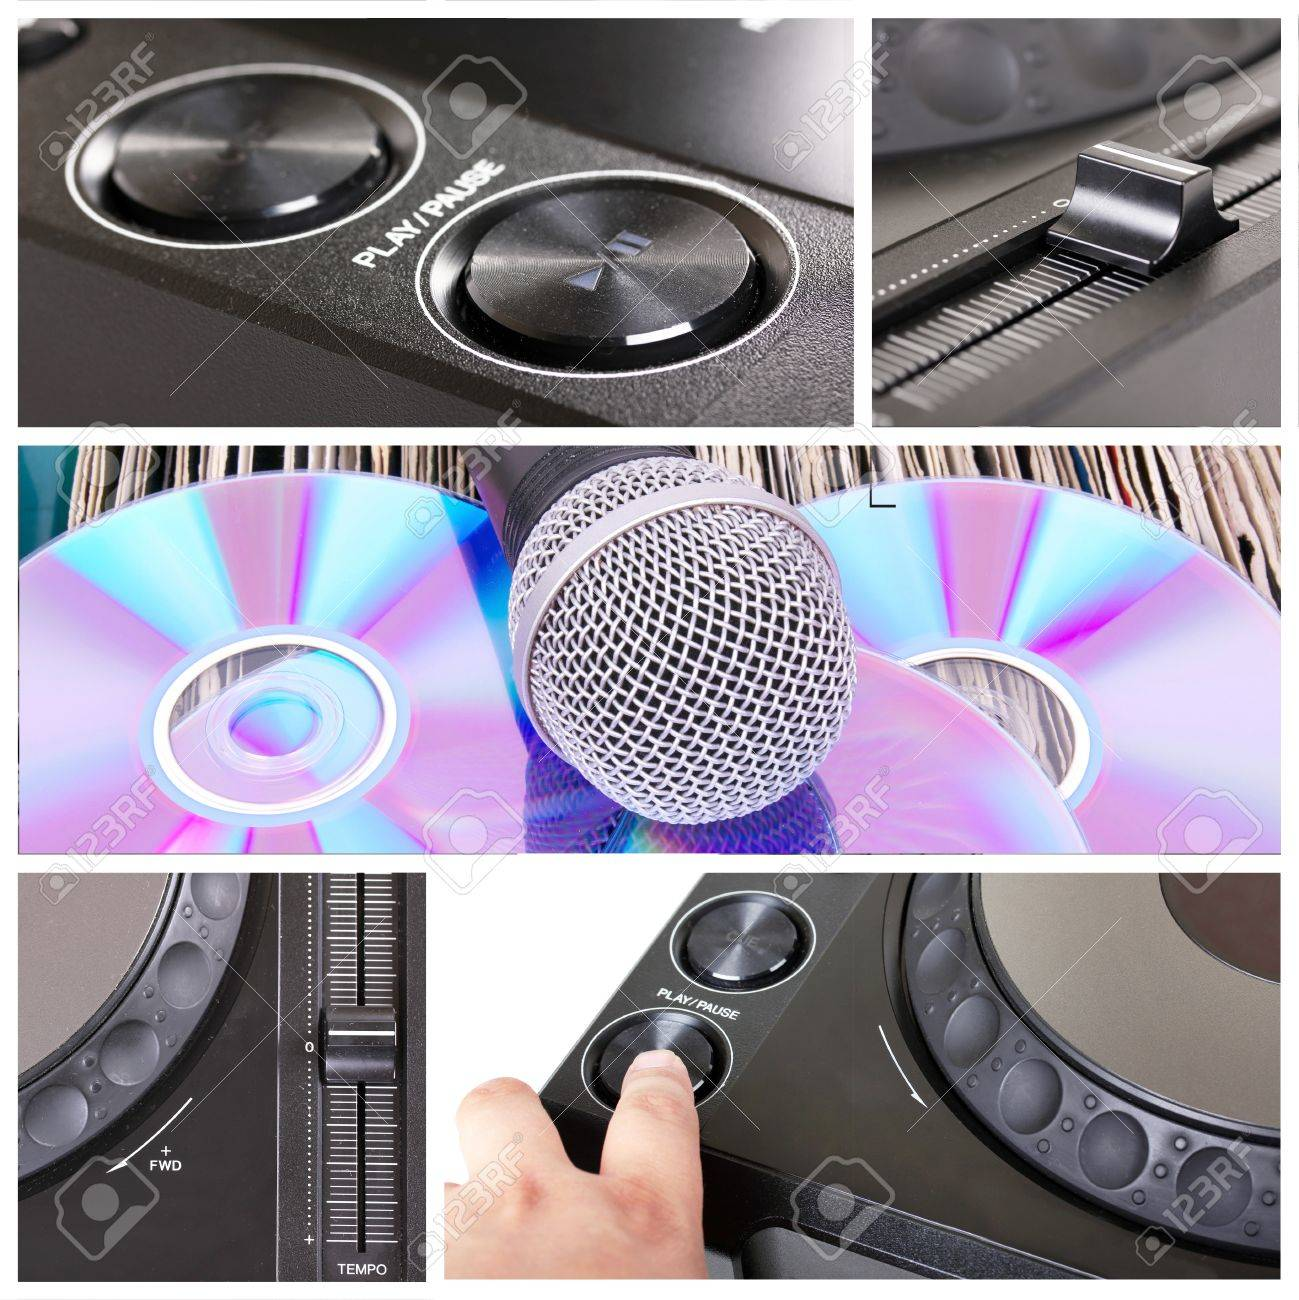 Dj tools collage with parts of cd player, microphone  and mixer Stock Photo - 9766081